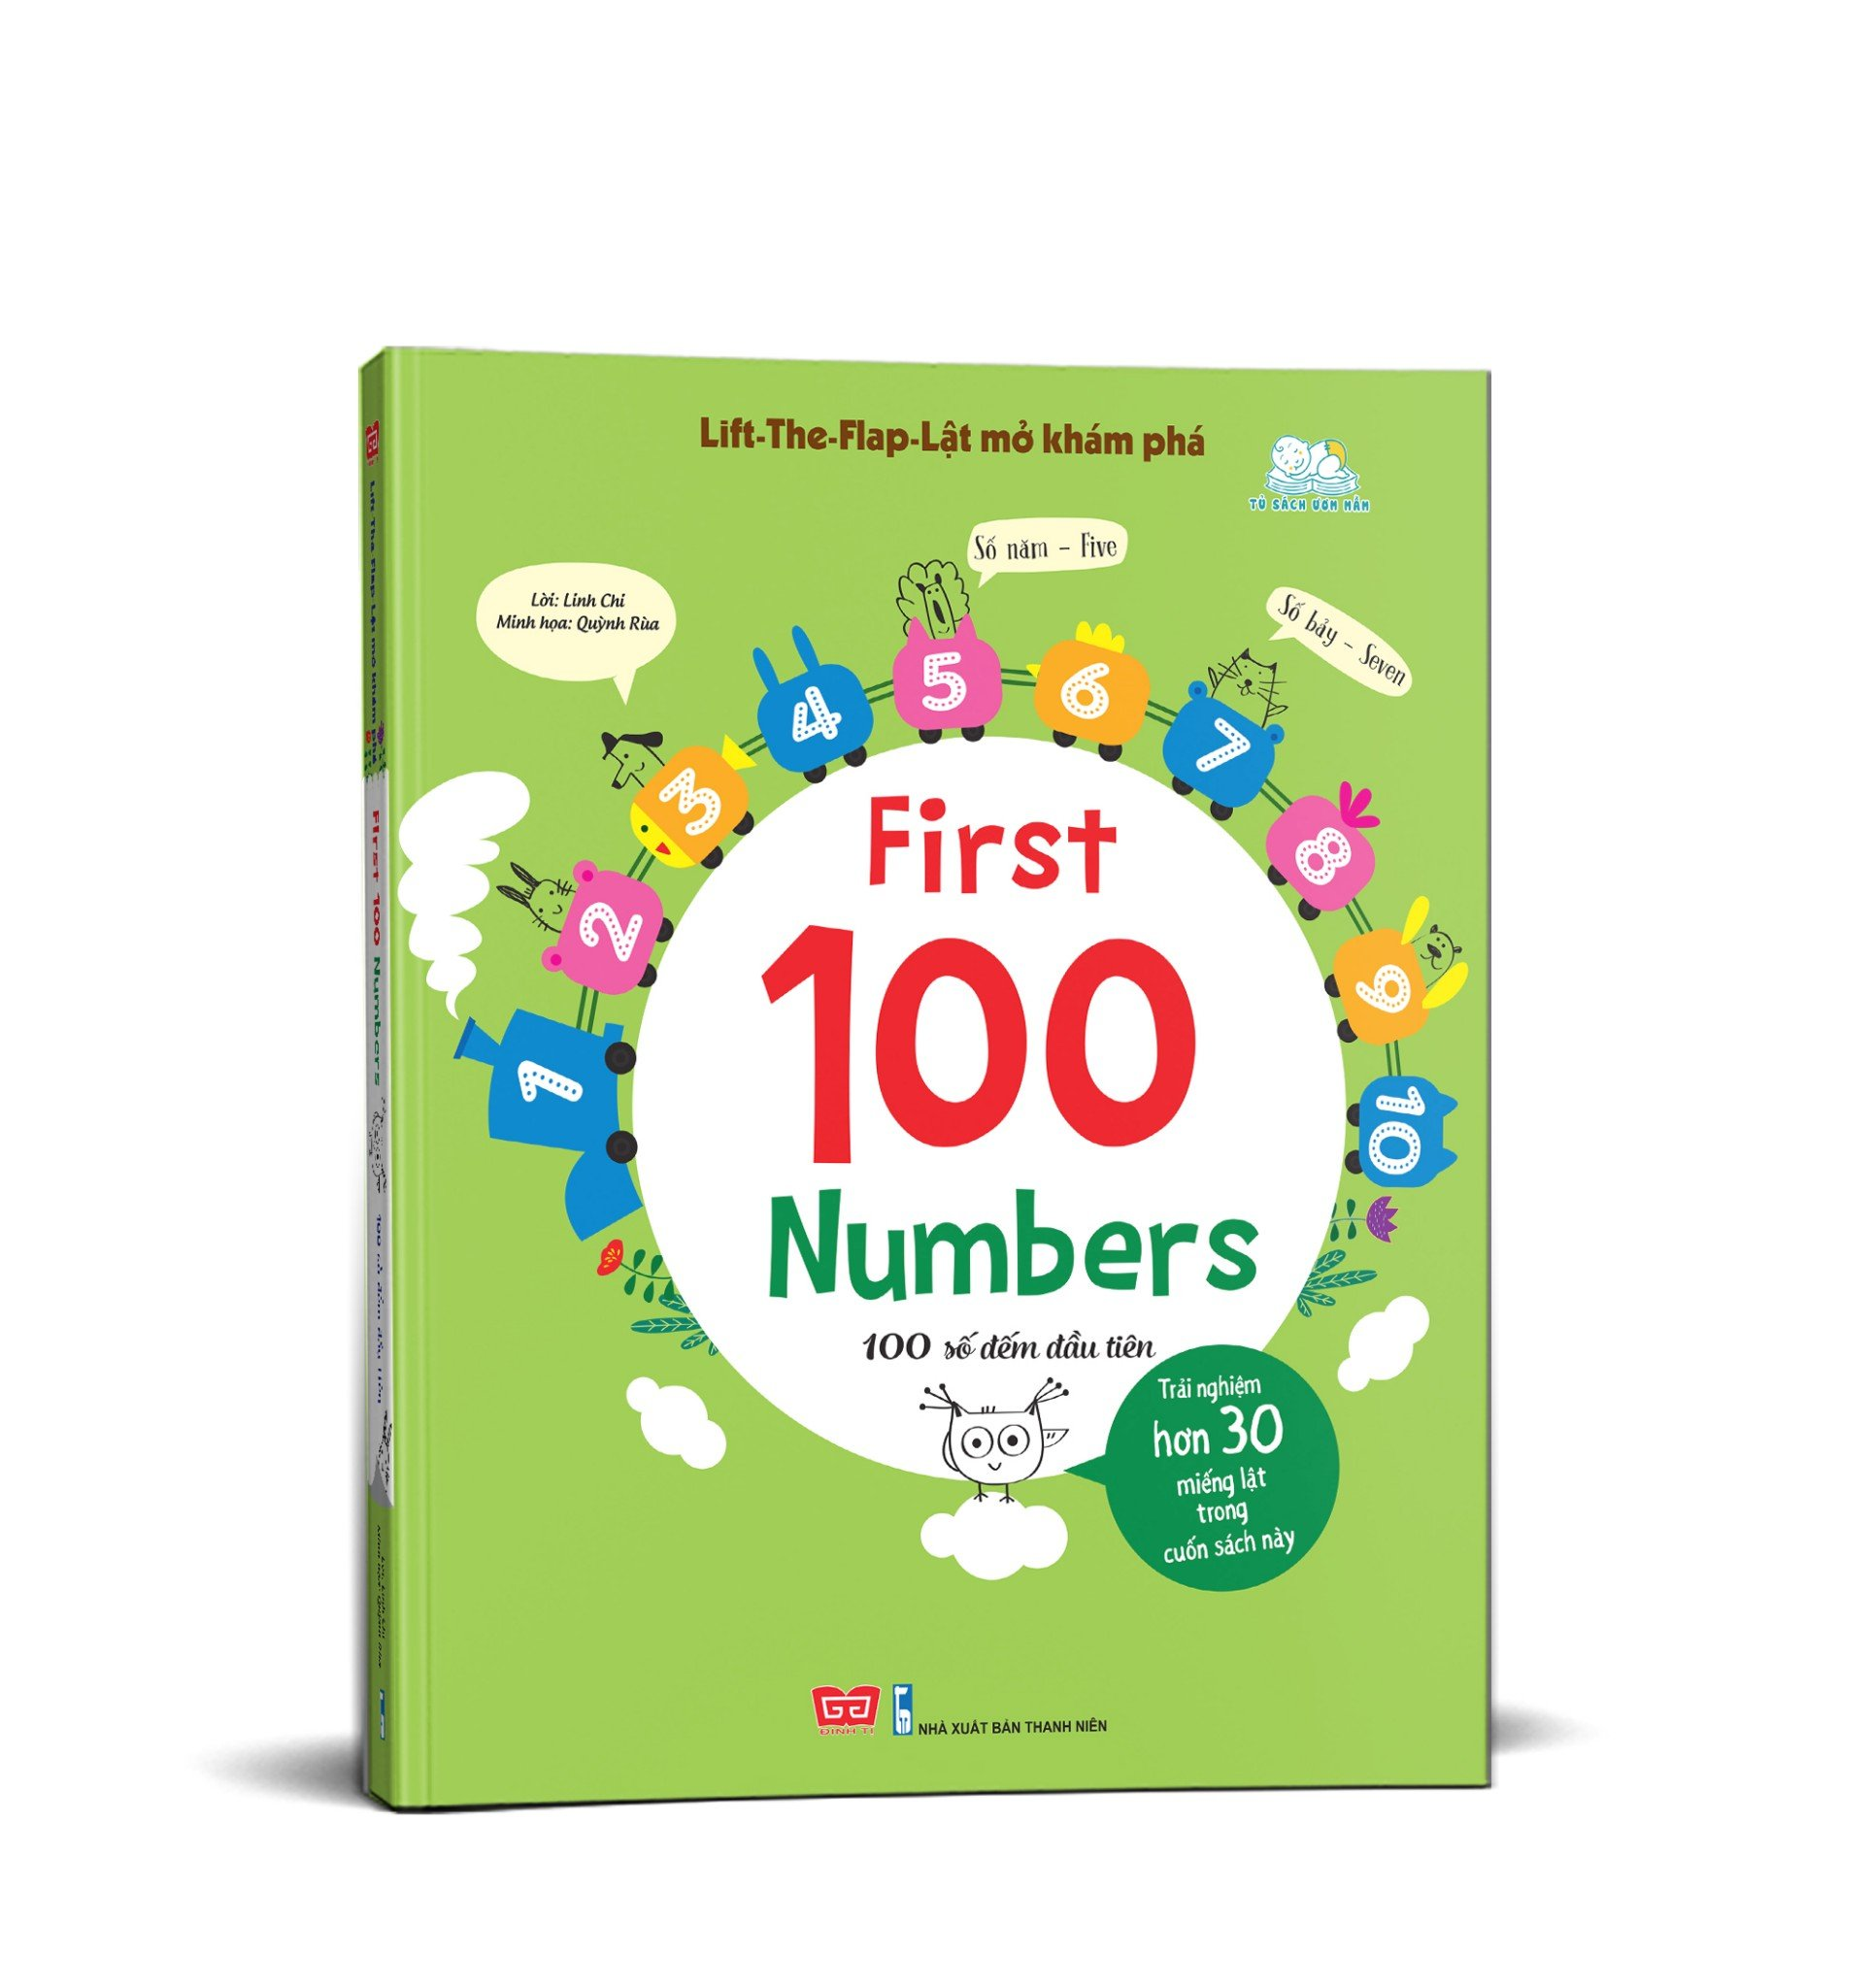 Sách tương tác - Lift-The-Flap-Lật mở khám phá - First 100 Numbers - 100 số đếm đầu tiên